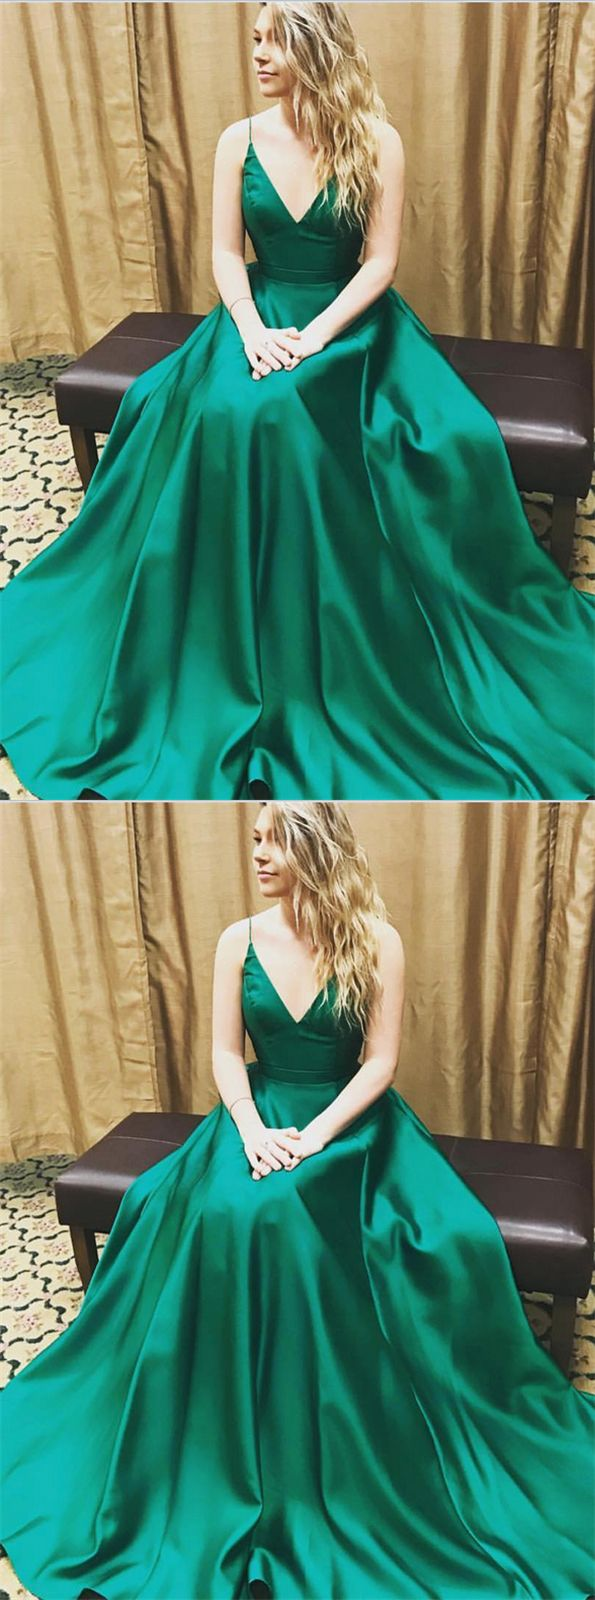 Green PromD resses,V-neck,Spaghetti,Long,Elegant,Simple,Cheap,A-line,Charming,Handmade,Prom Dresses,Prom Dress,Prom Gowns,Evenign Dresses,Evening Gowns,Party Dresses,Women Dresses,Prom Dresses For Teens